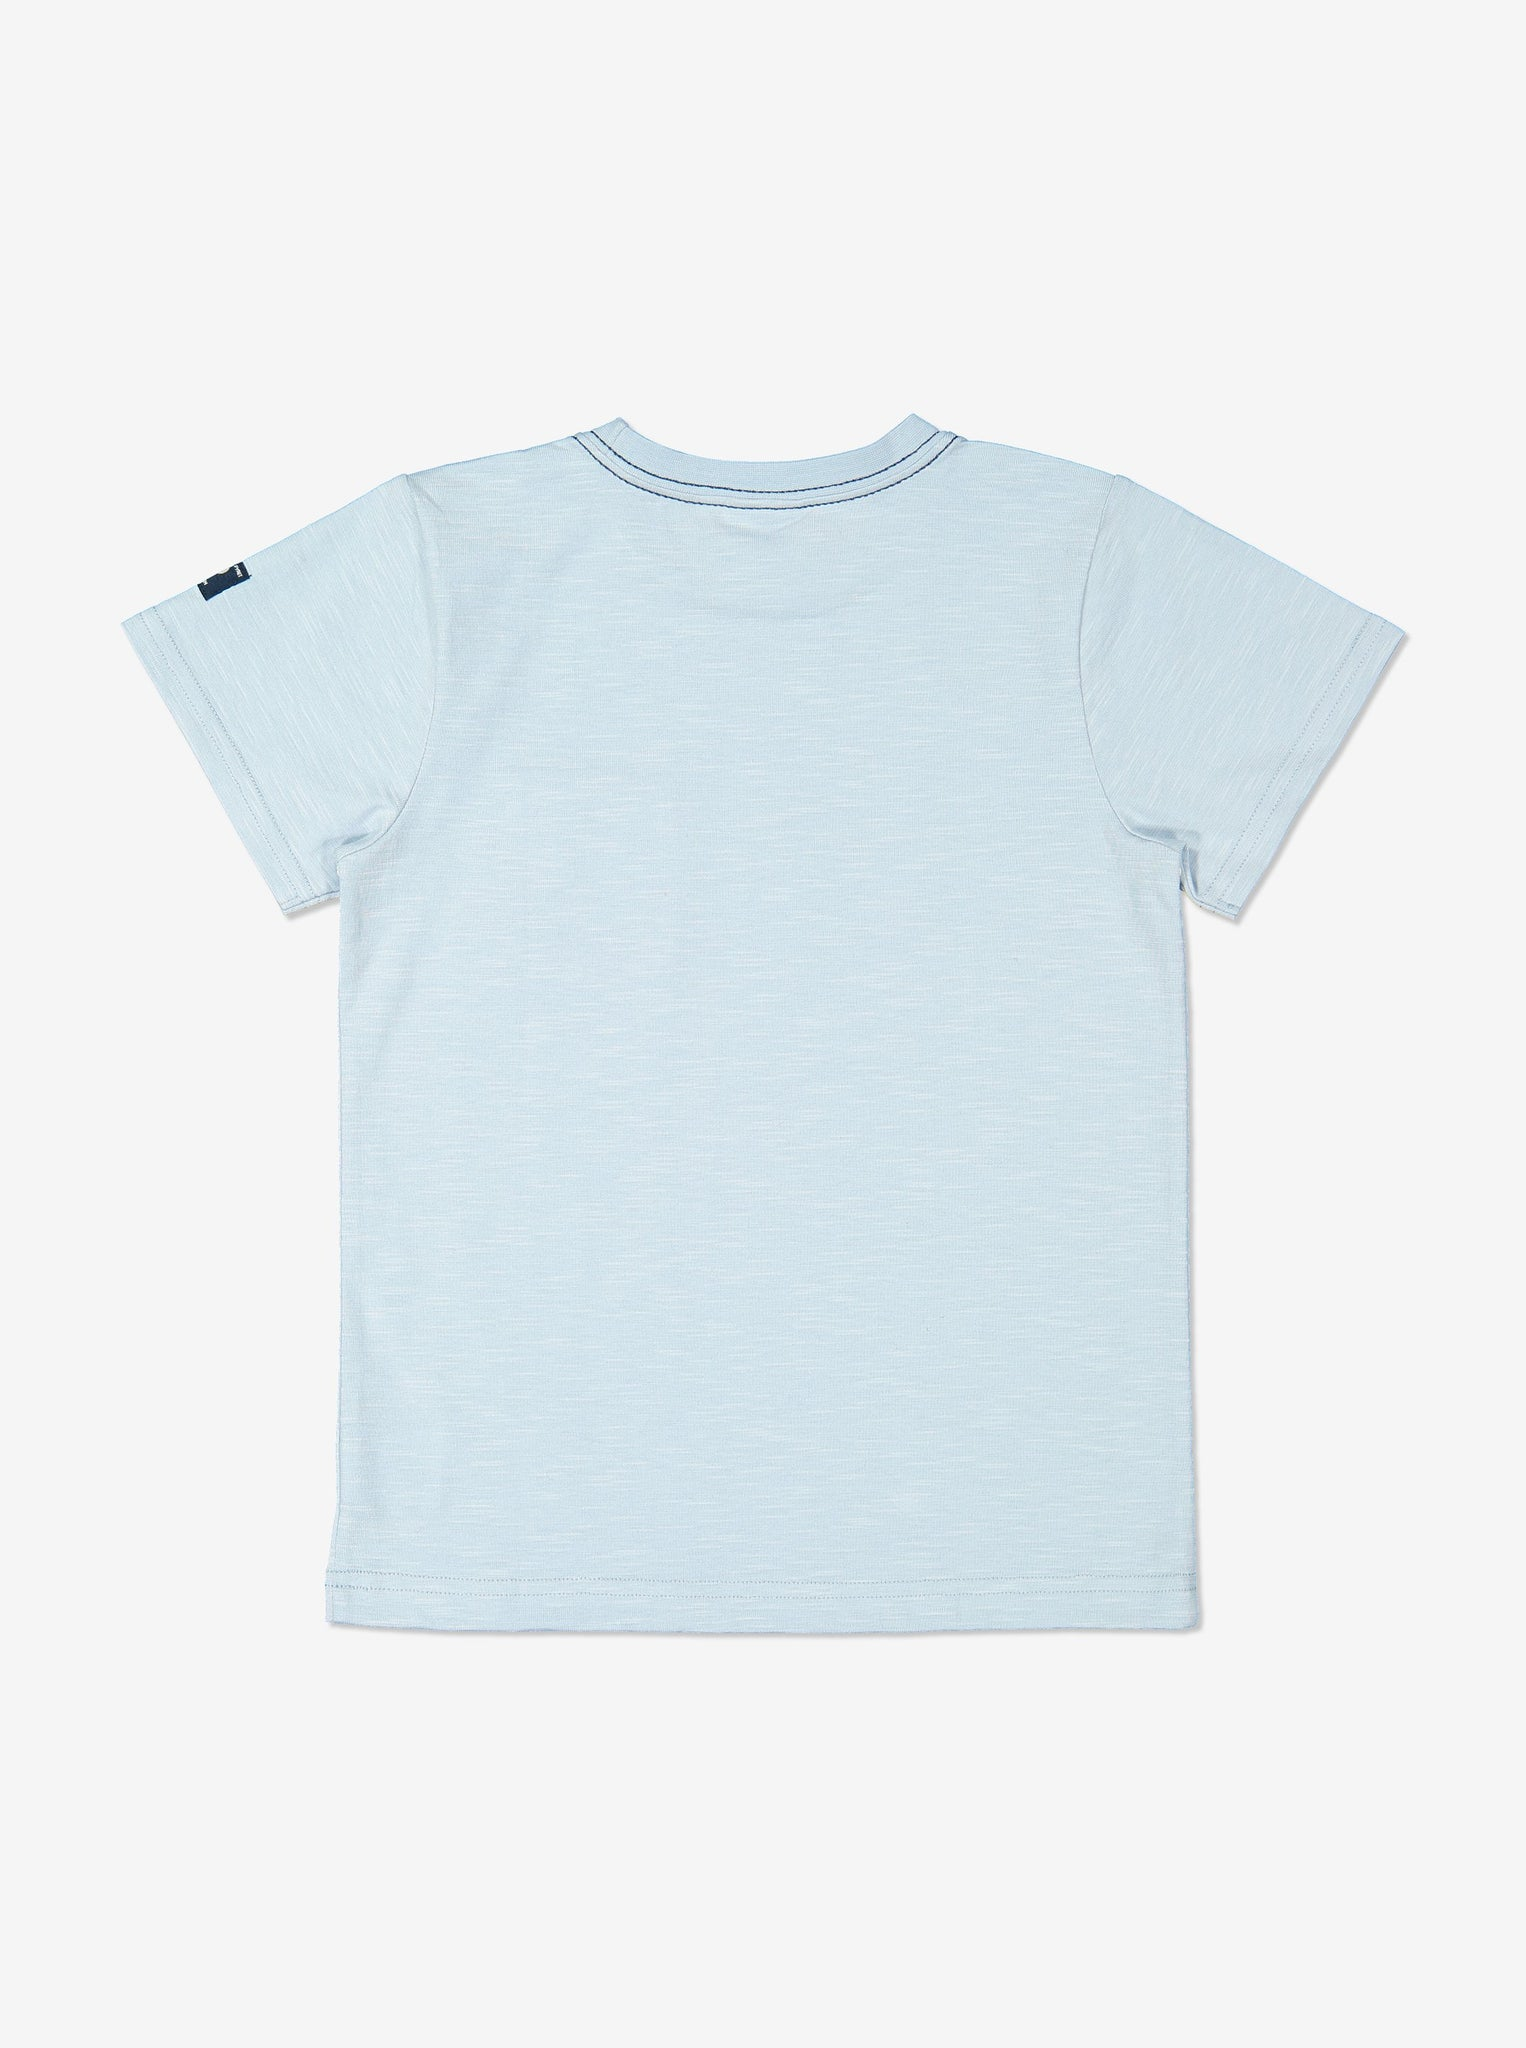 Boy Blue Plain GOTS Organic Kids T-Shirt